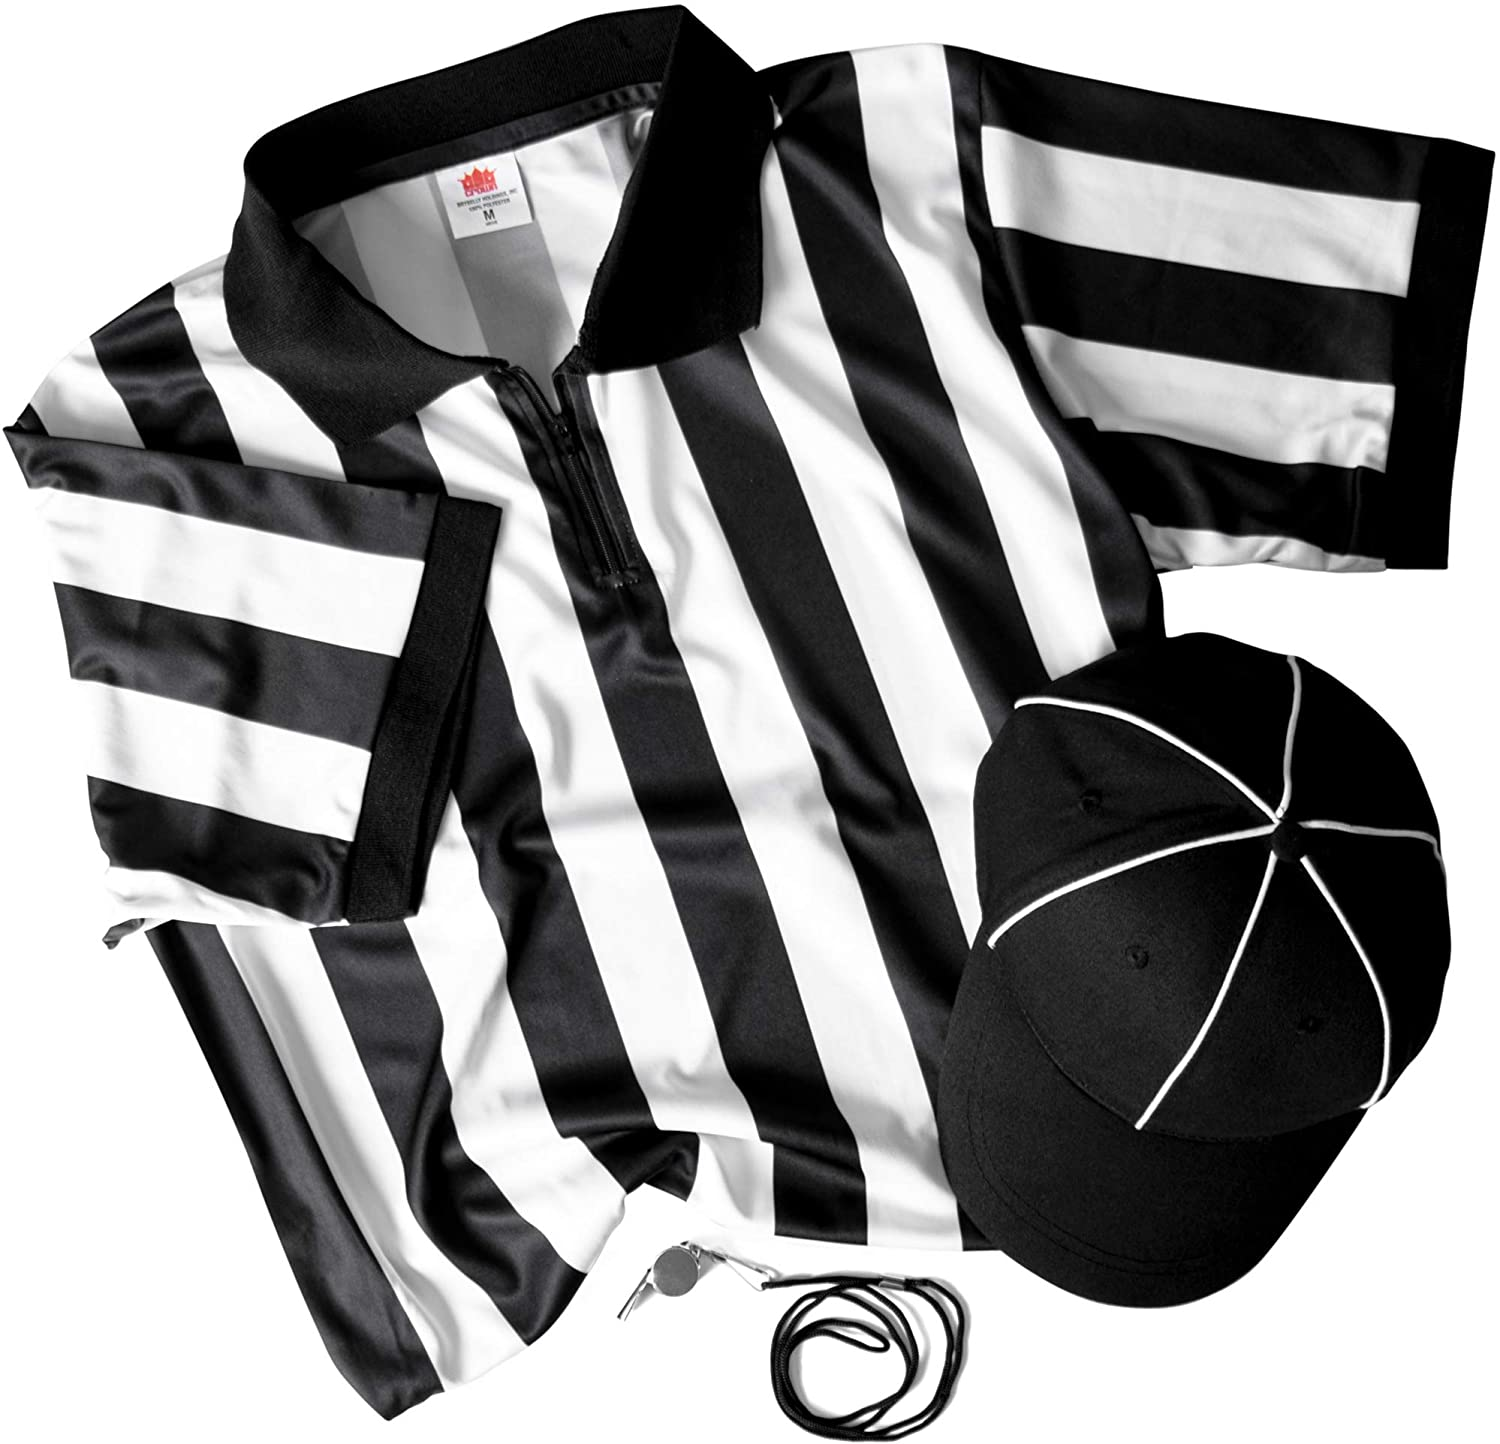 Umpire Hat Referee Necessities Mens Bundle Pro//Amateur Team Sports Costume Apparel Kit for Men Black /& White Striped Official Jersey /& Stainless Steel Ref Pea Whistle with Lanyard